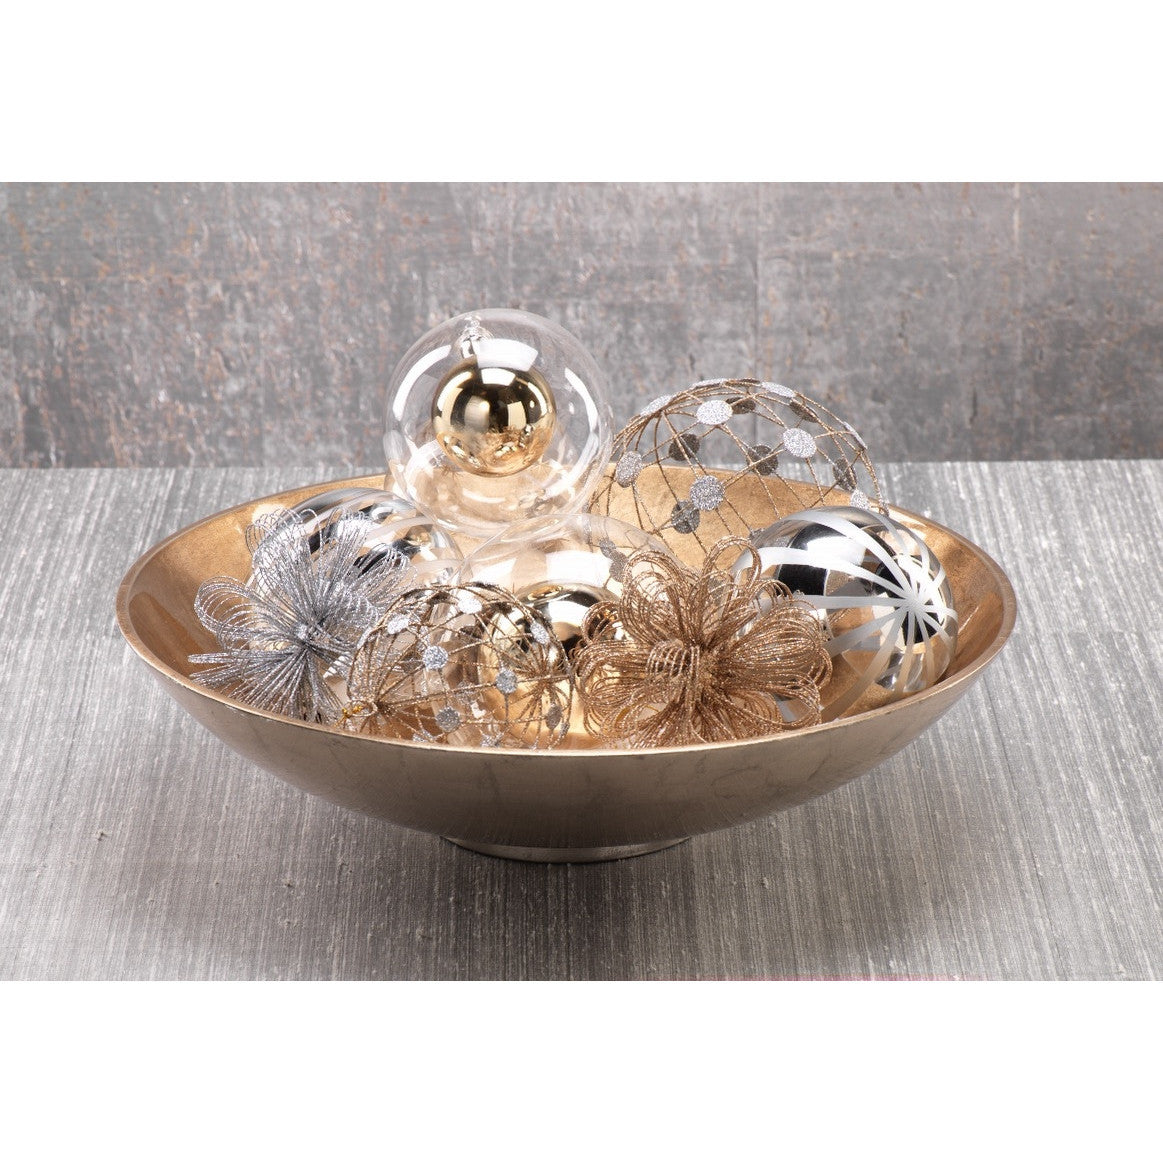 Two Tone Serving Bowl - CARLYLE AVENUE